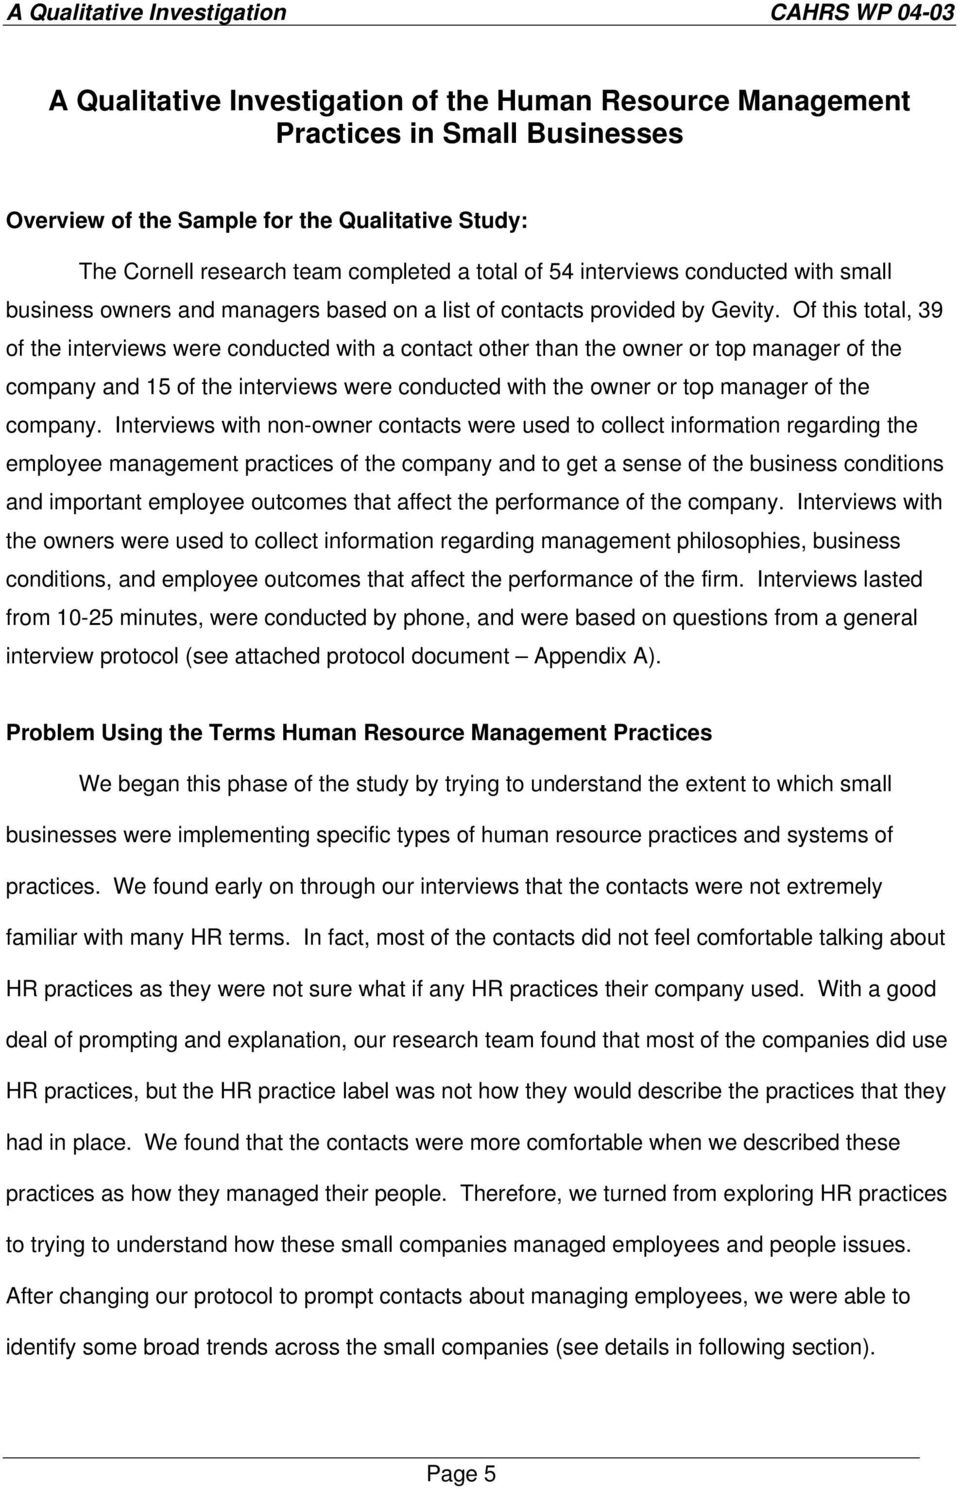 A Qualitative Investigation of the Human Resource Management